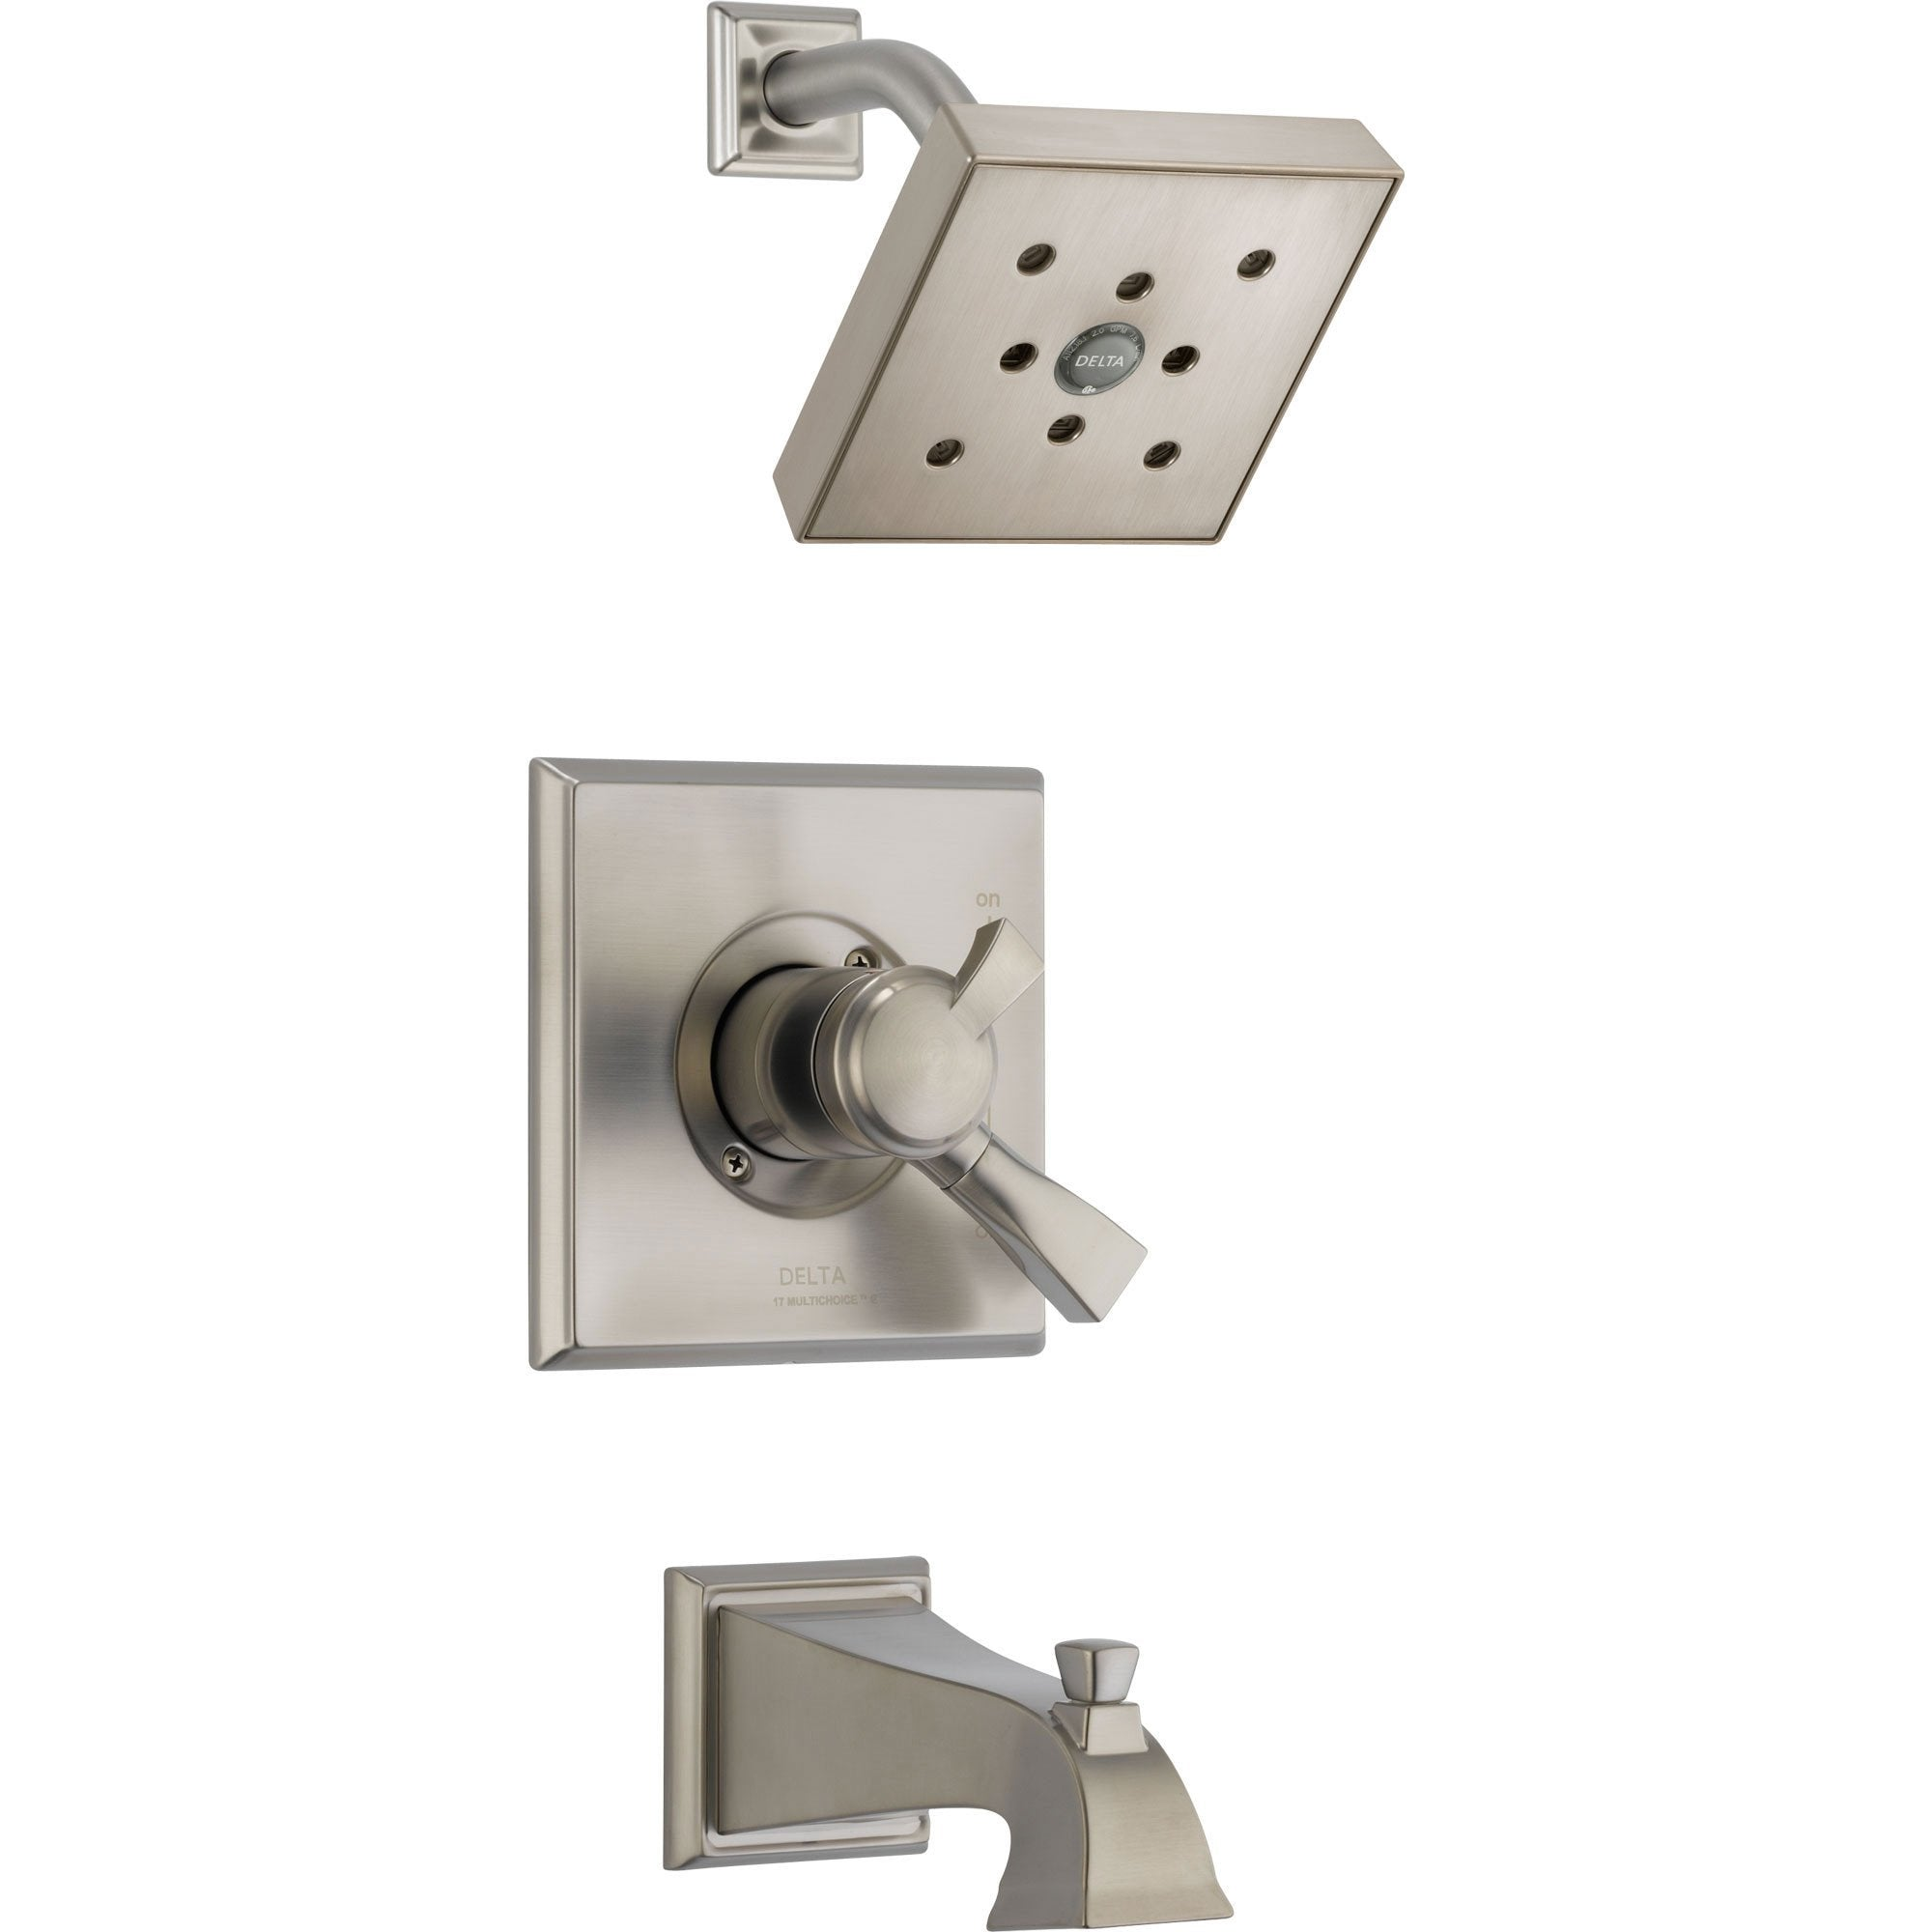 Delta Dryden Temp/Volume Tub & Shower Faucet with Valve in Stainless Steel D444V